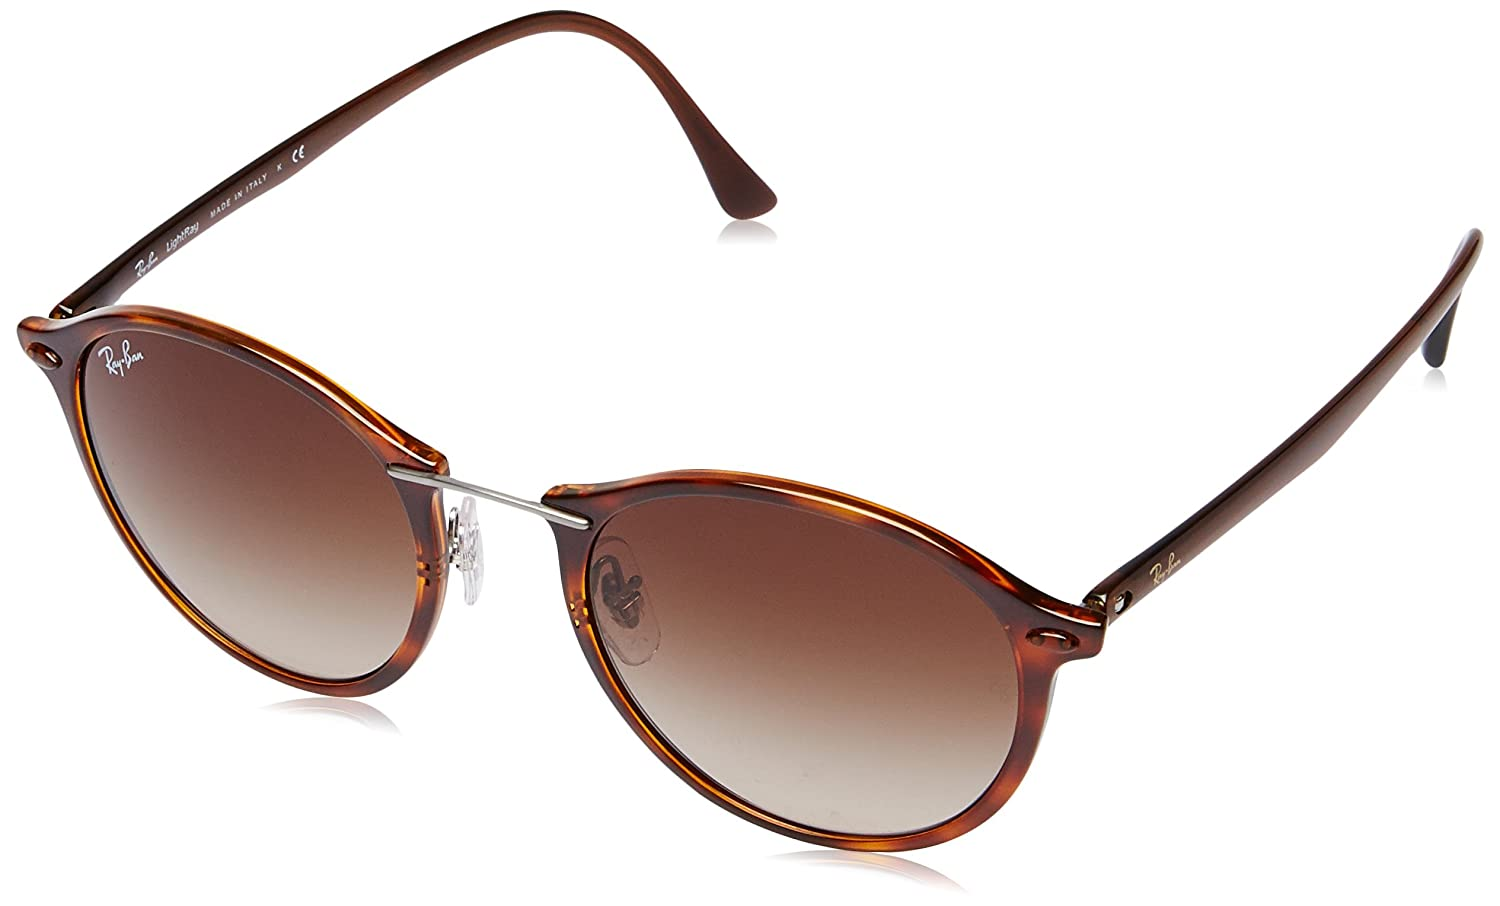 85b57f0486 Amazon.com  Ray-Ban Round Ii Light Ray Sunglasses